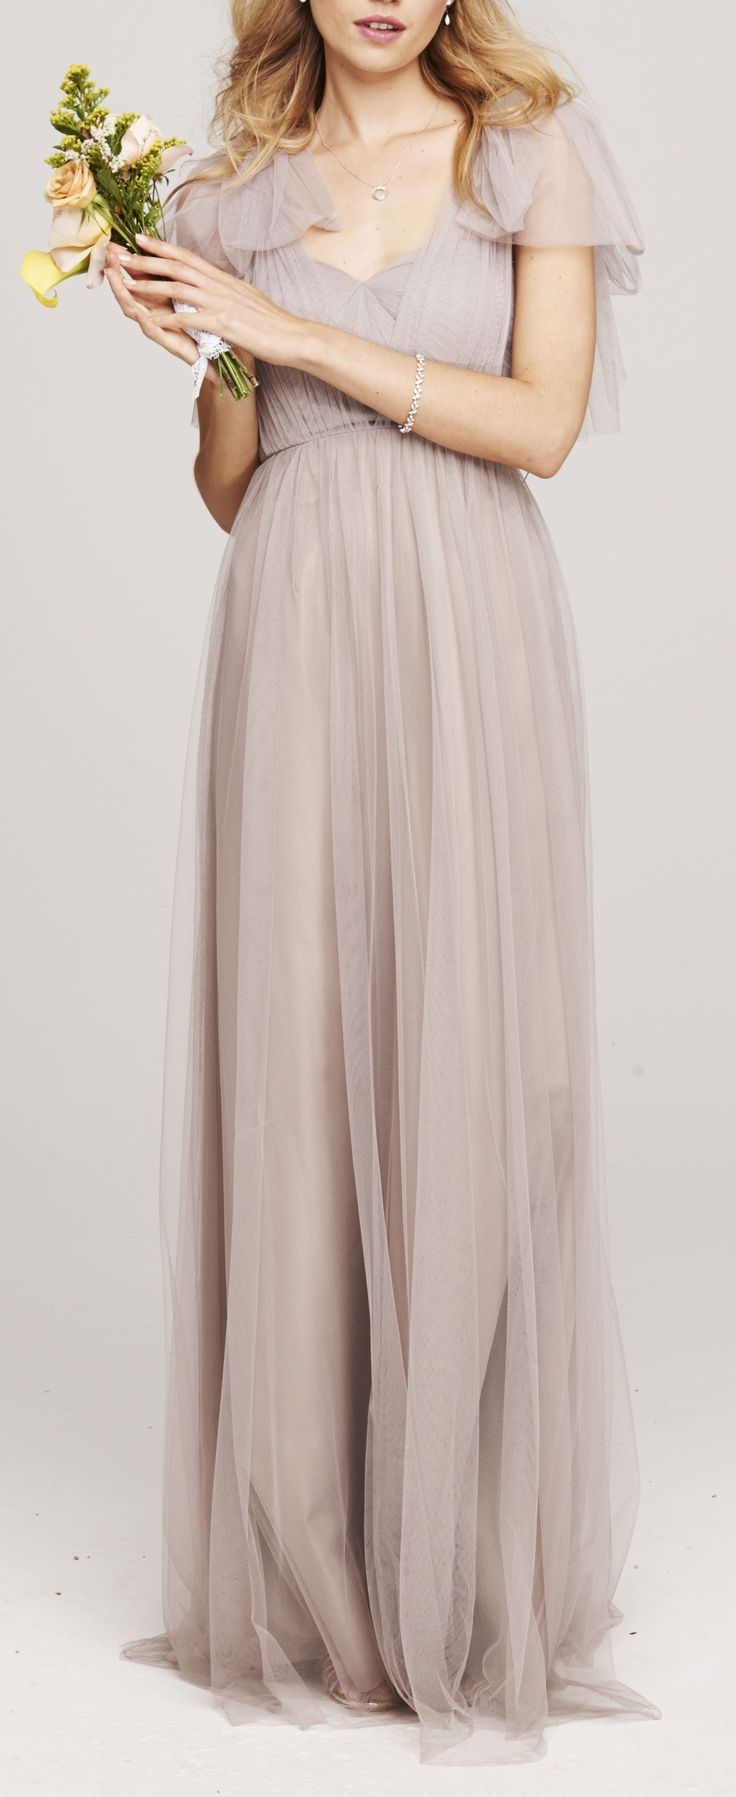 Grey bridesmaid dress. Love, love, love this! I want my bridesmaids to look gorge too :)